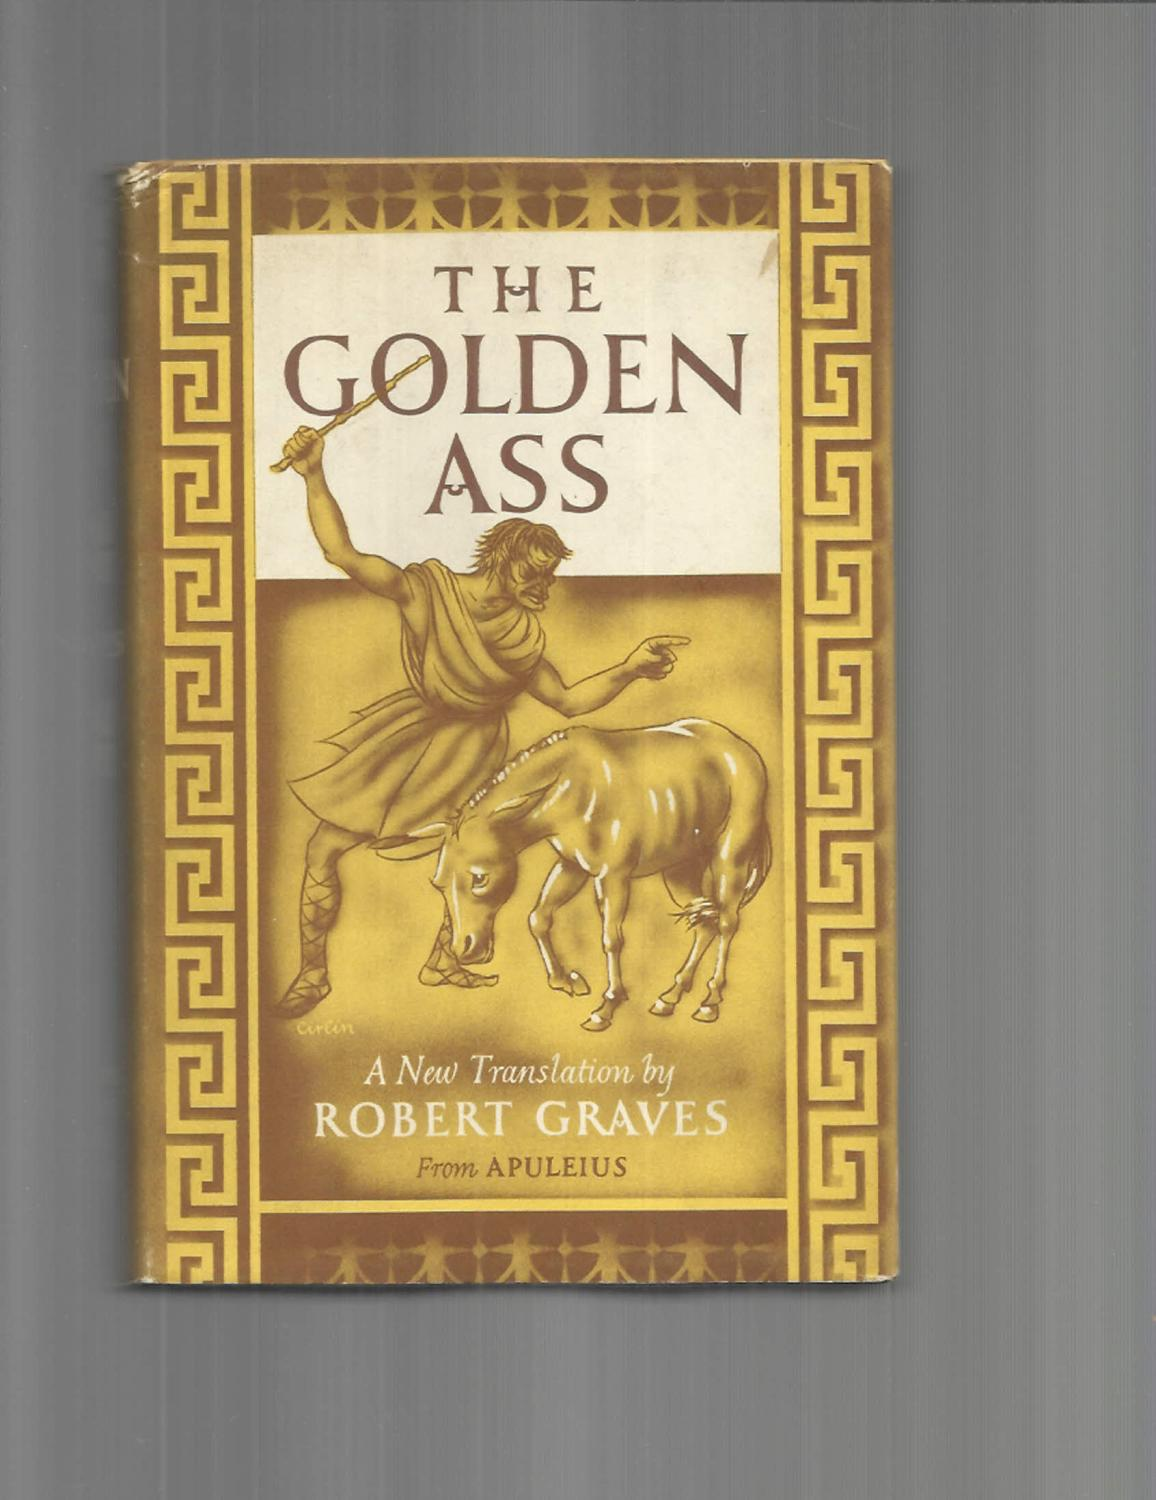 THE GOLDEN ASS ~ The Transformations Of Lucius Otherwise Known As THE GOLDEN ASS: A New Translation By Robert Graves From Apuleius. Lucius Apuleius &